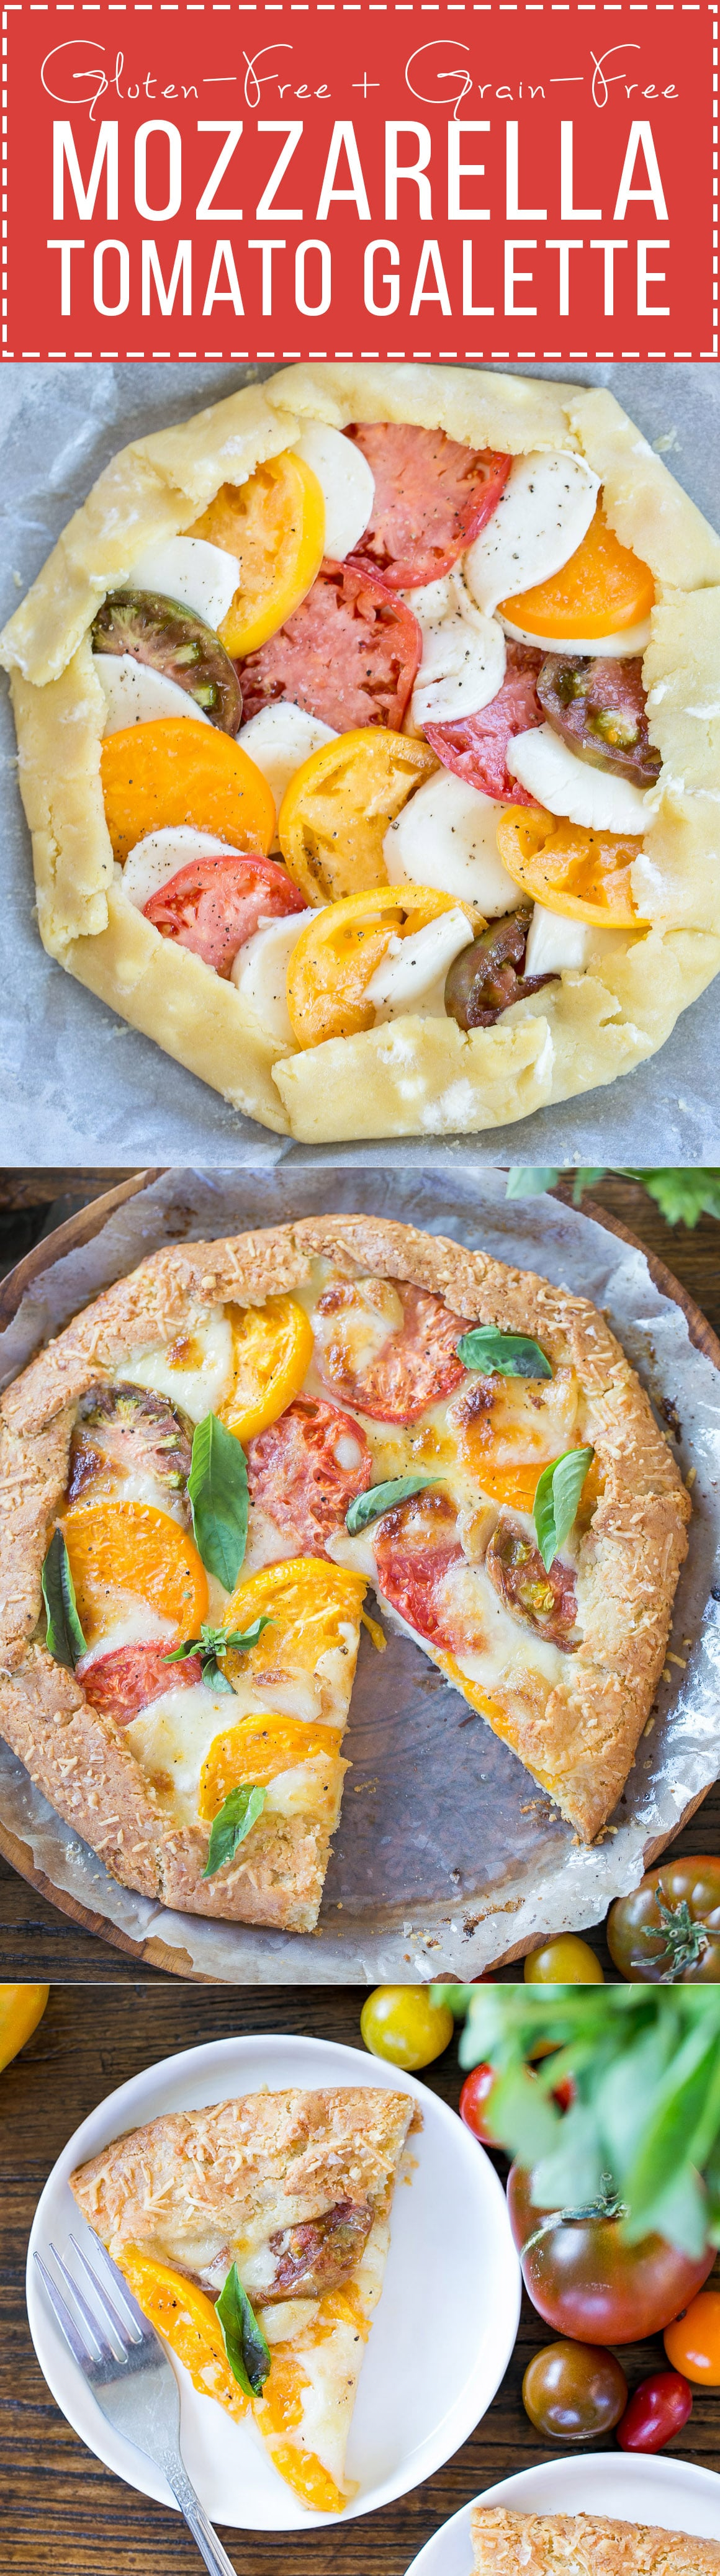 Mozzarella Heirloom Tomato Galette with Parmesan Crust ...